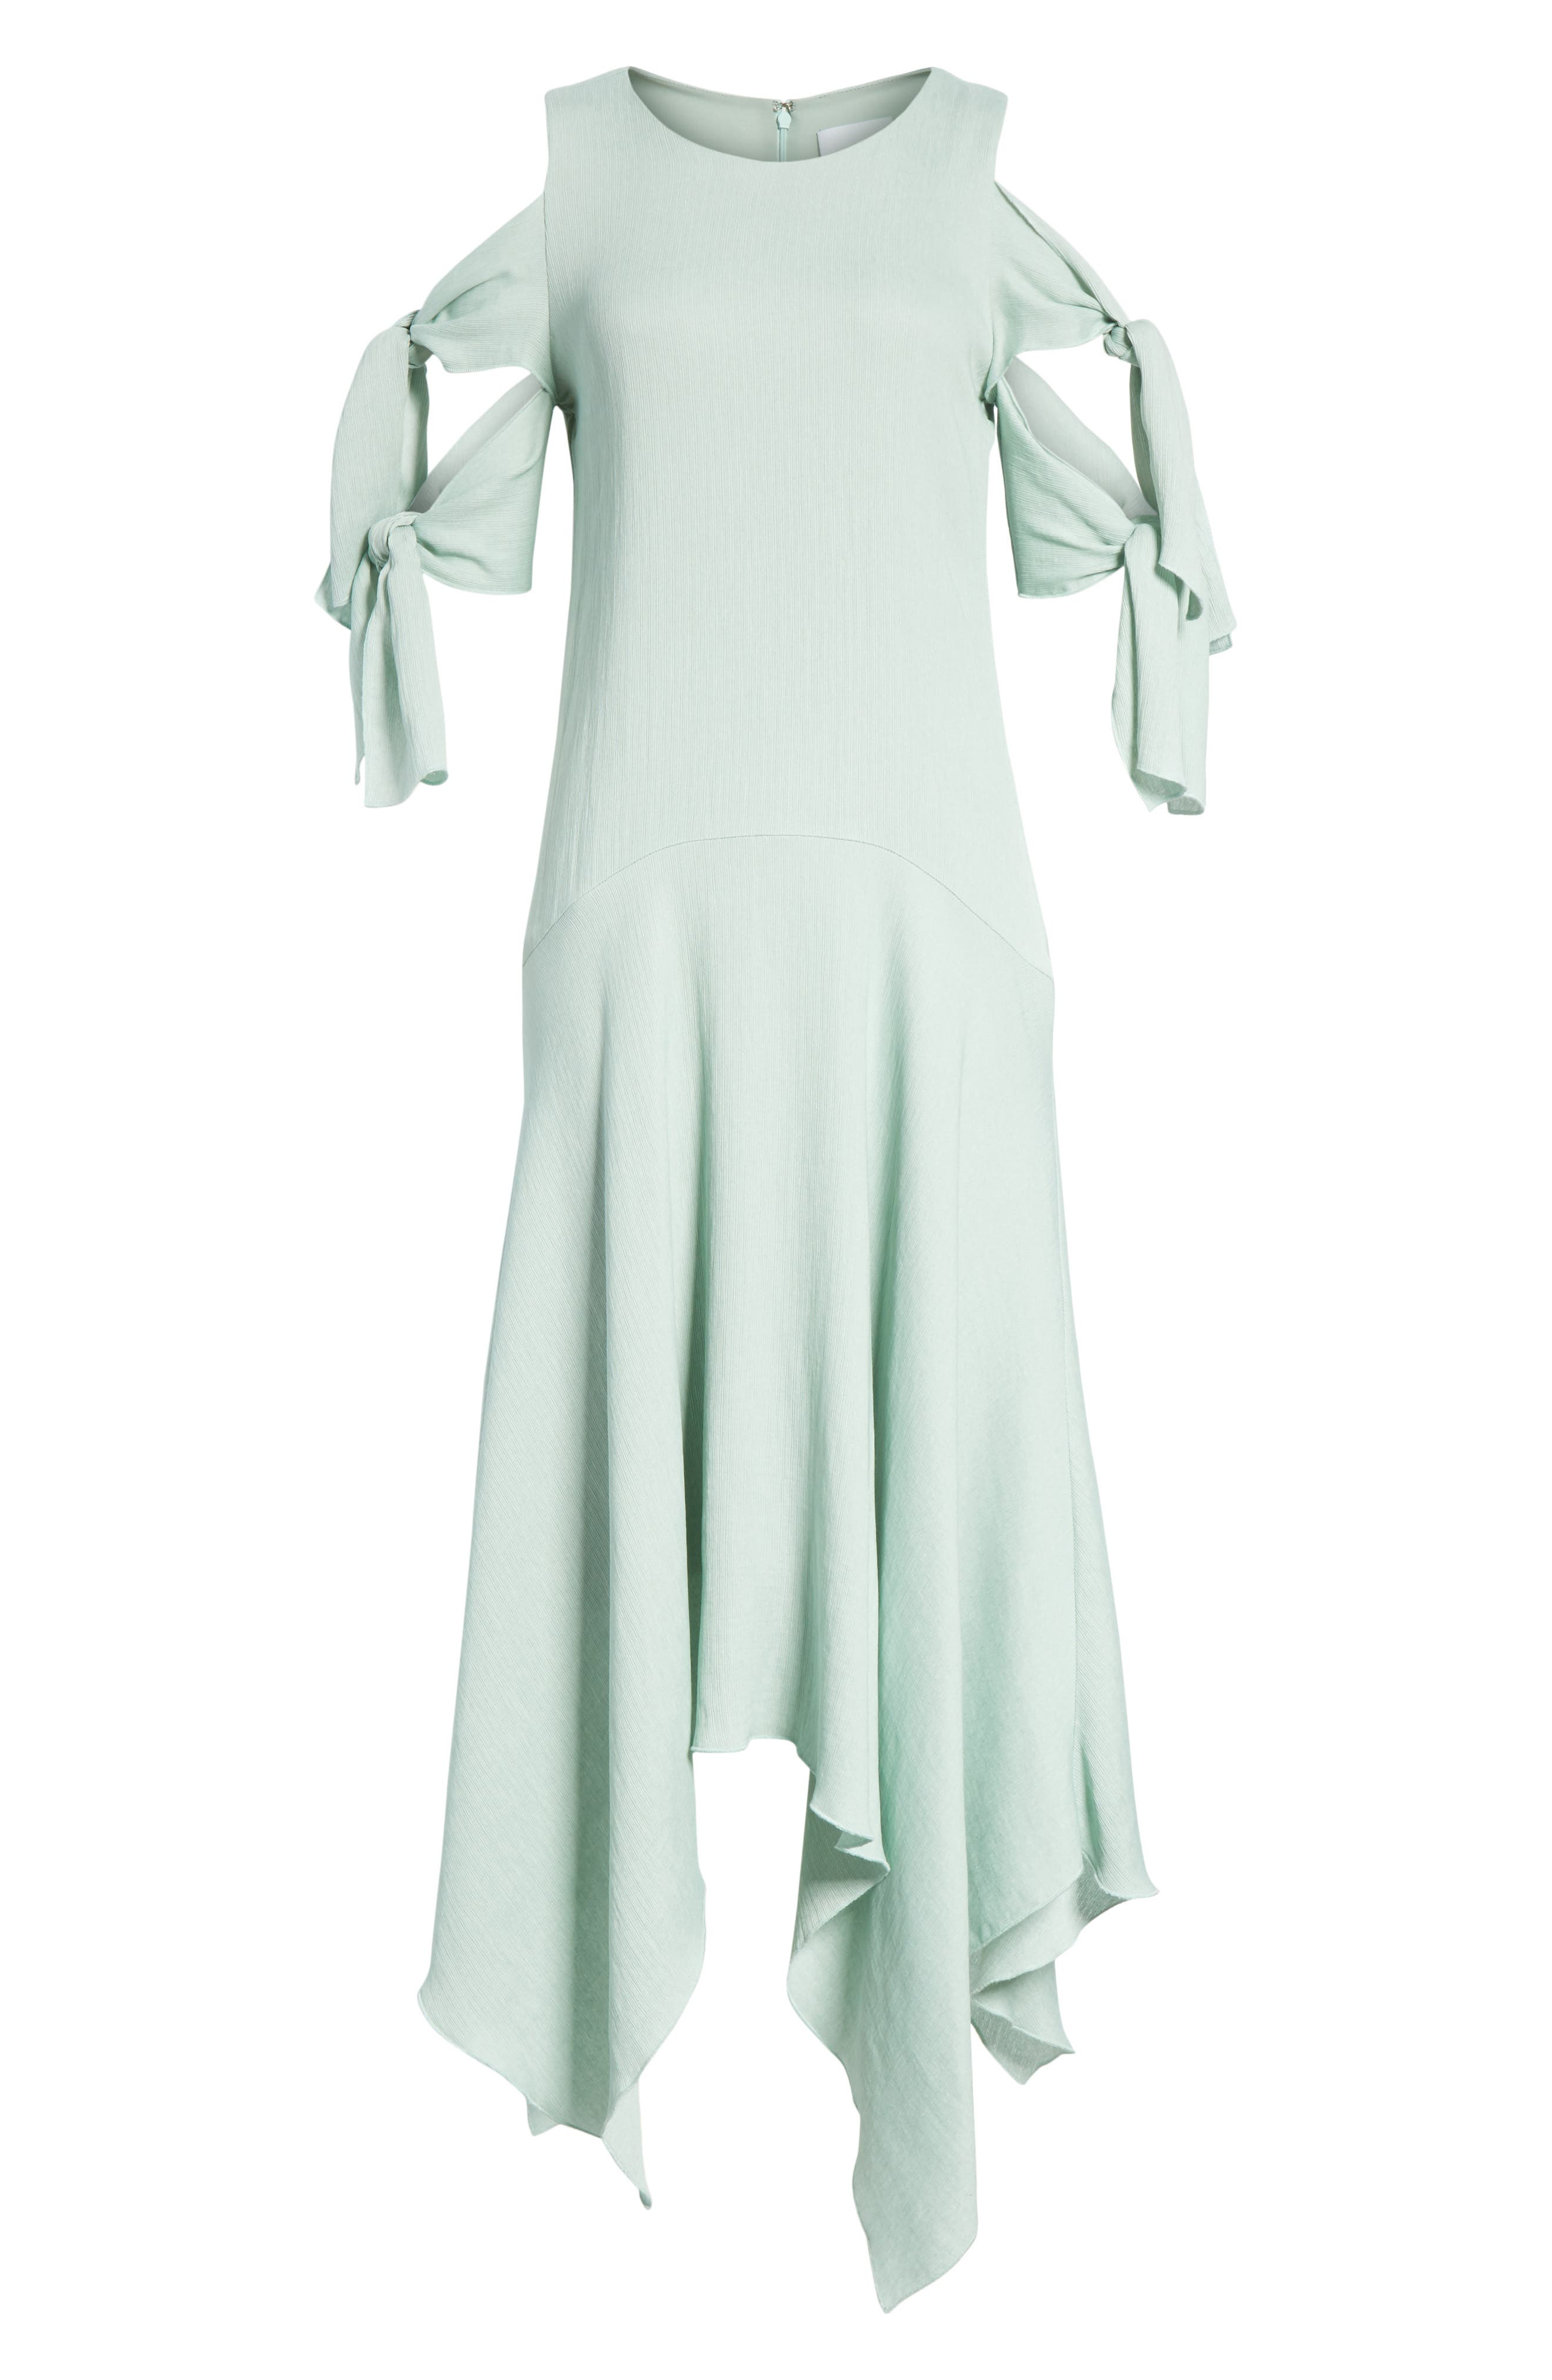 Prose & Poetry Vivianna Drop Waist Midi Dress,                             Alternate thumbnail 6, color,                             Aqua Foam